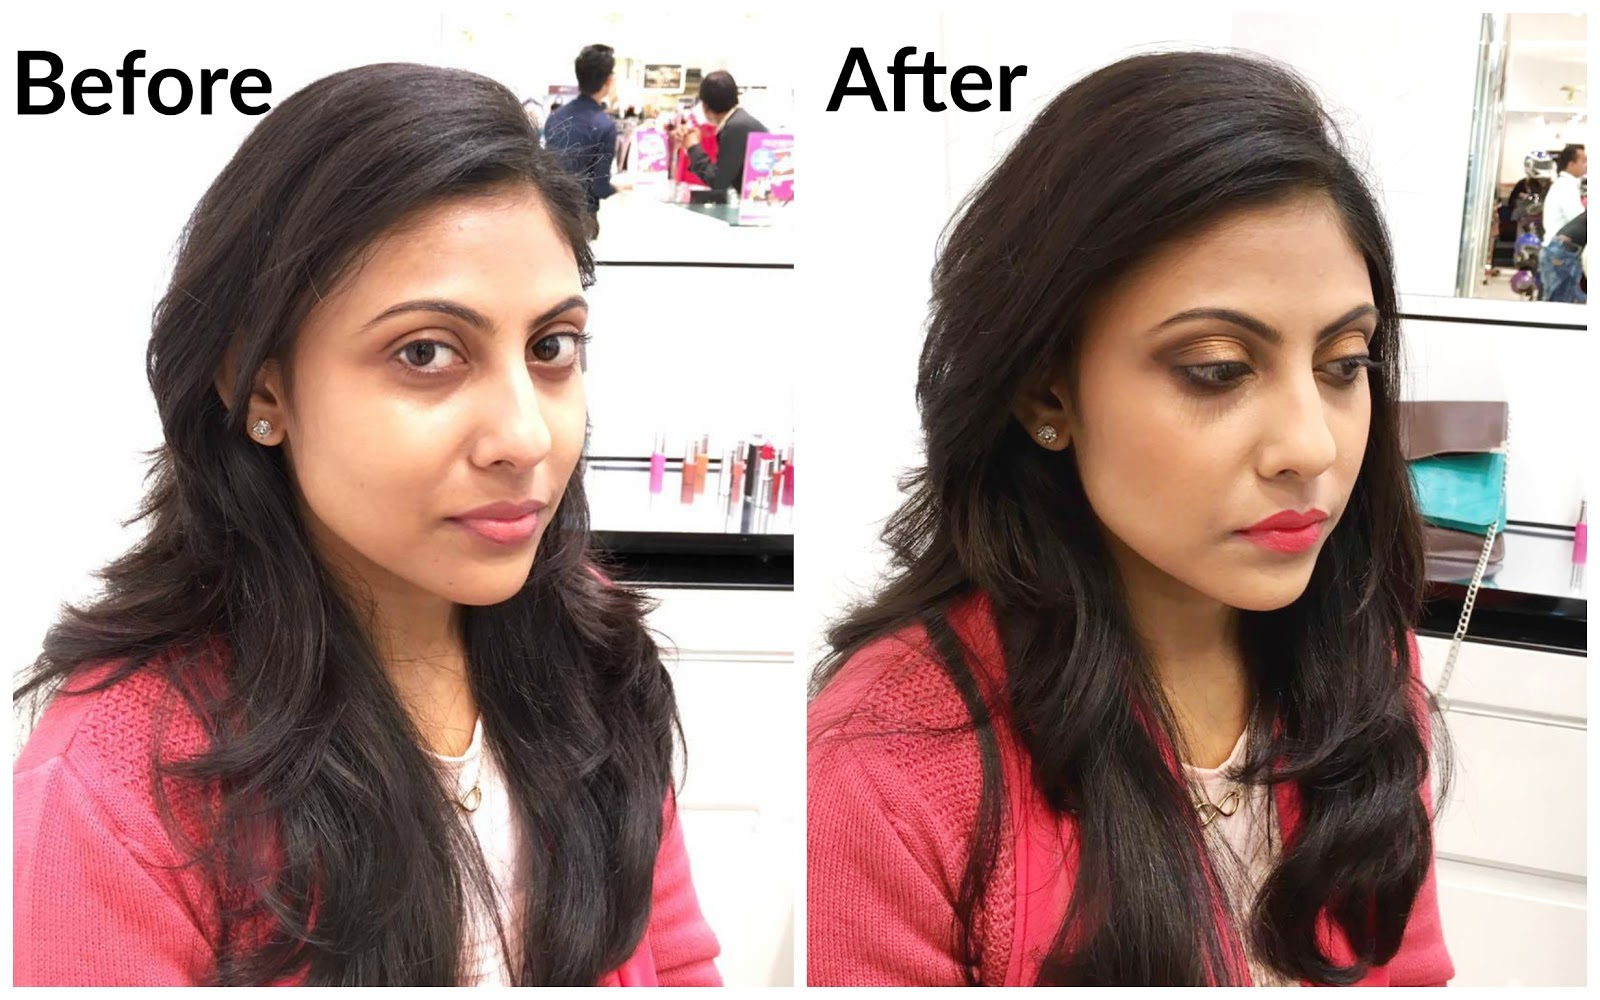 My Givenchy Makeover: Bronze Smoky Eyes & Bold Lips by Ajoy Sengupta|cherryontopblog.com